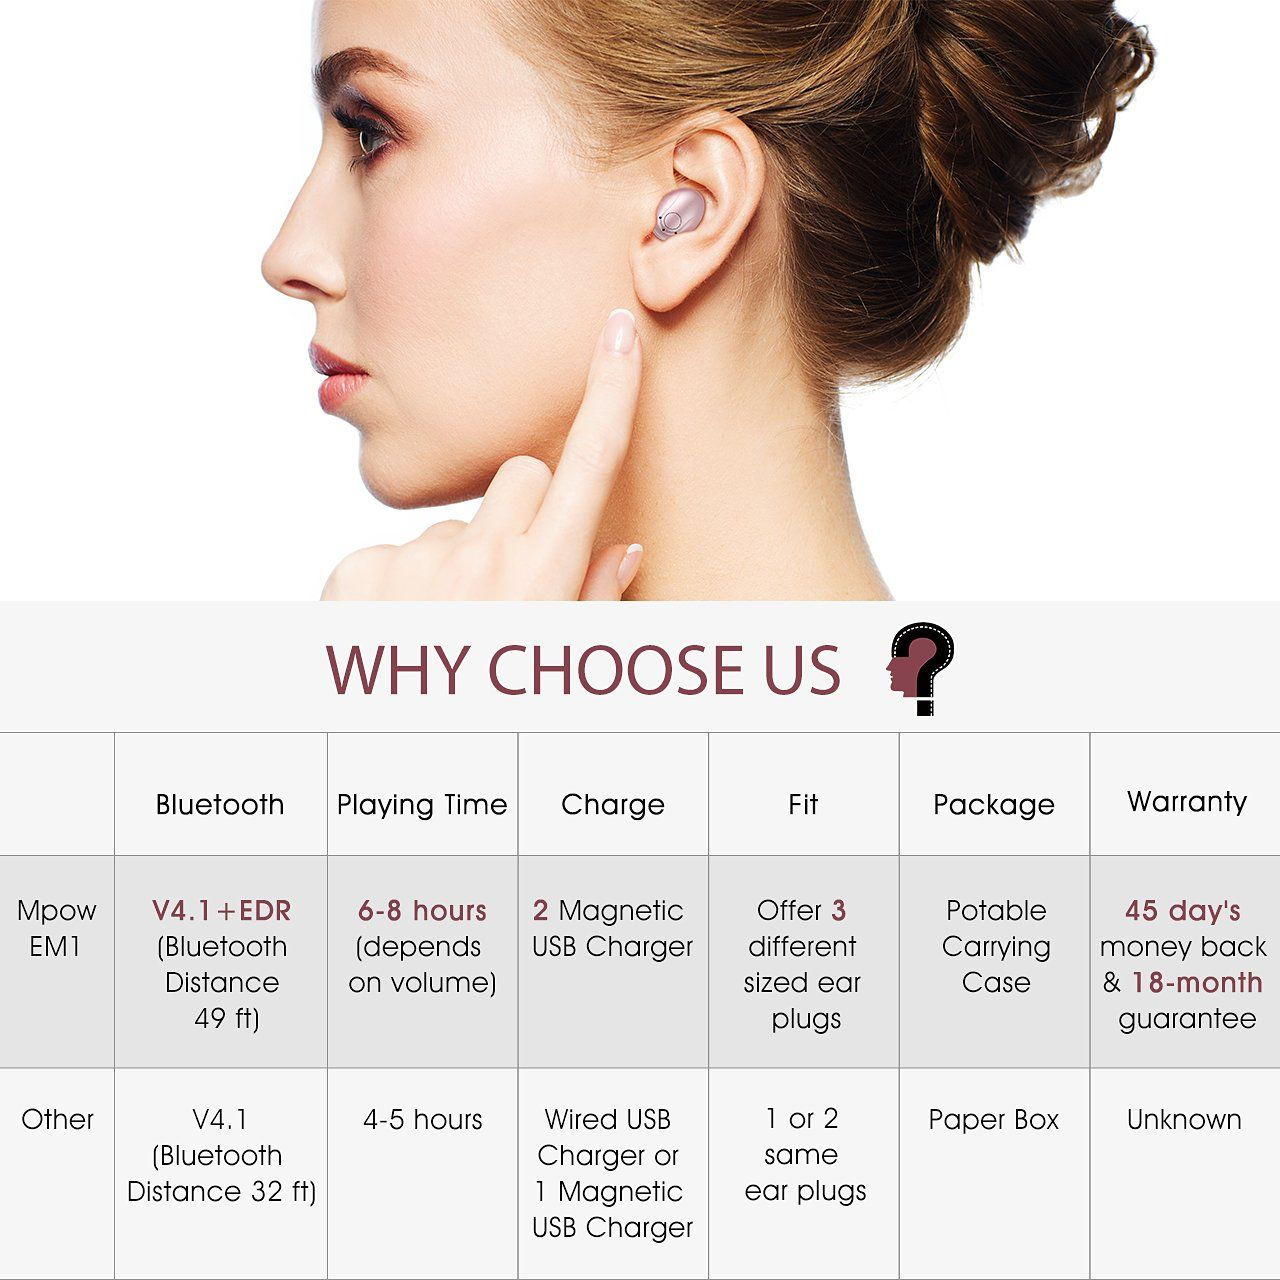 6e5e8ed6313 Mpow EM1 Bluetooth Earpiece, V4.1 Wireless Headphones, 6-Hr Playing Time Mini  Bluetooth Earbud with Microphone, Invisible Car Bluetooth Headset for Cell  ...